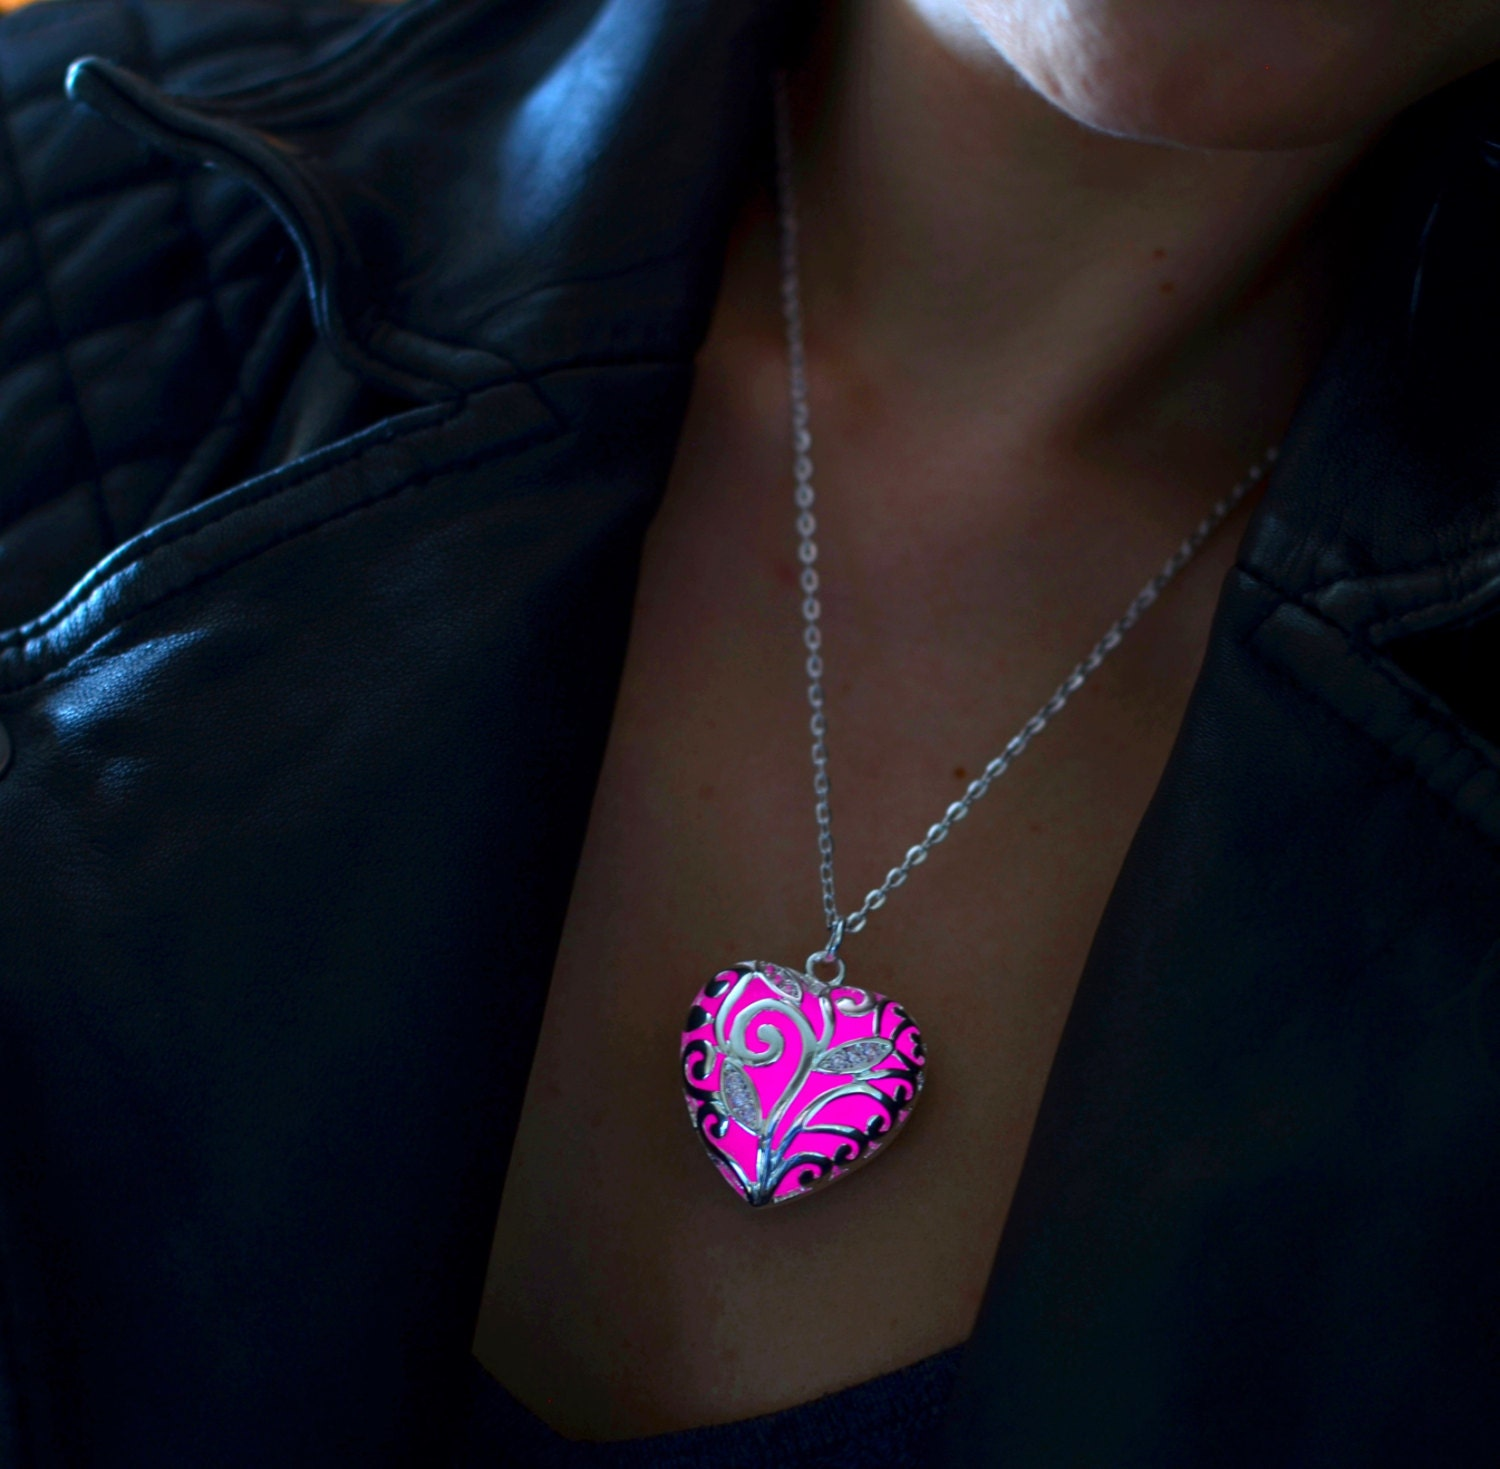 superfect new drop stone glow product jewelry fashion in hollow the pendant water necklace glowing locket dark silver